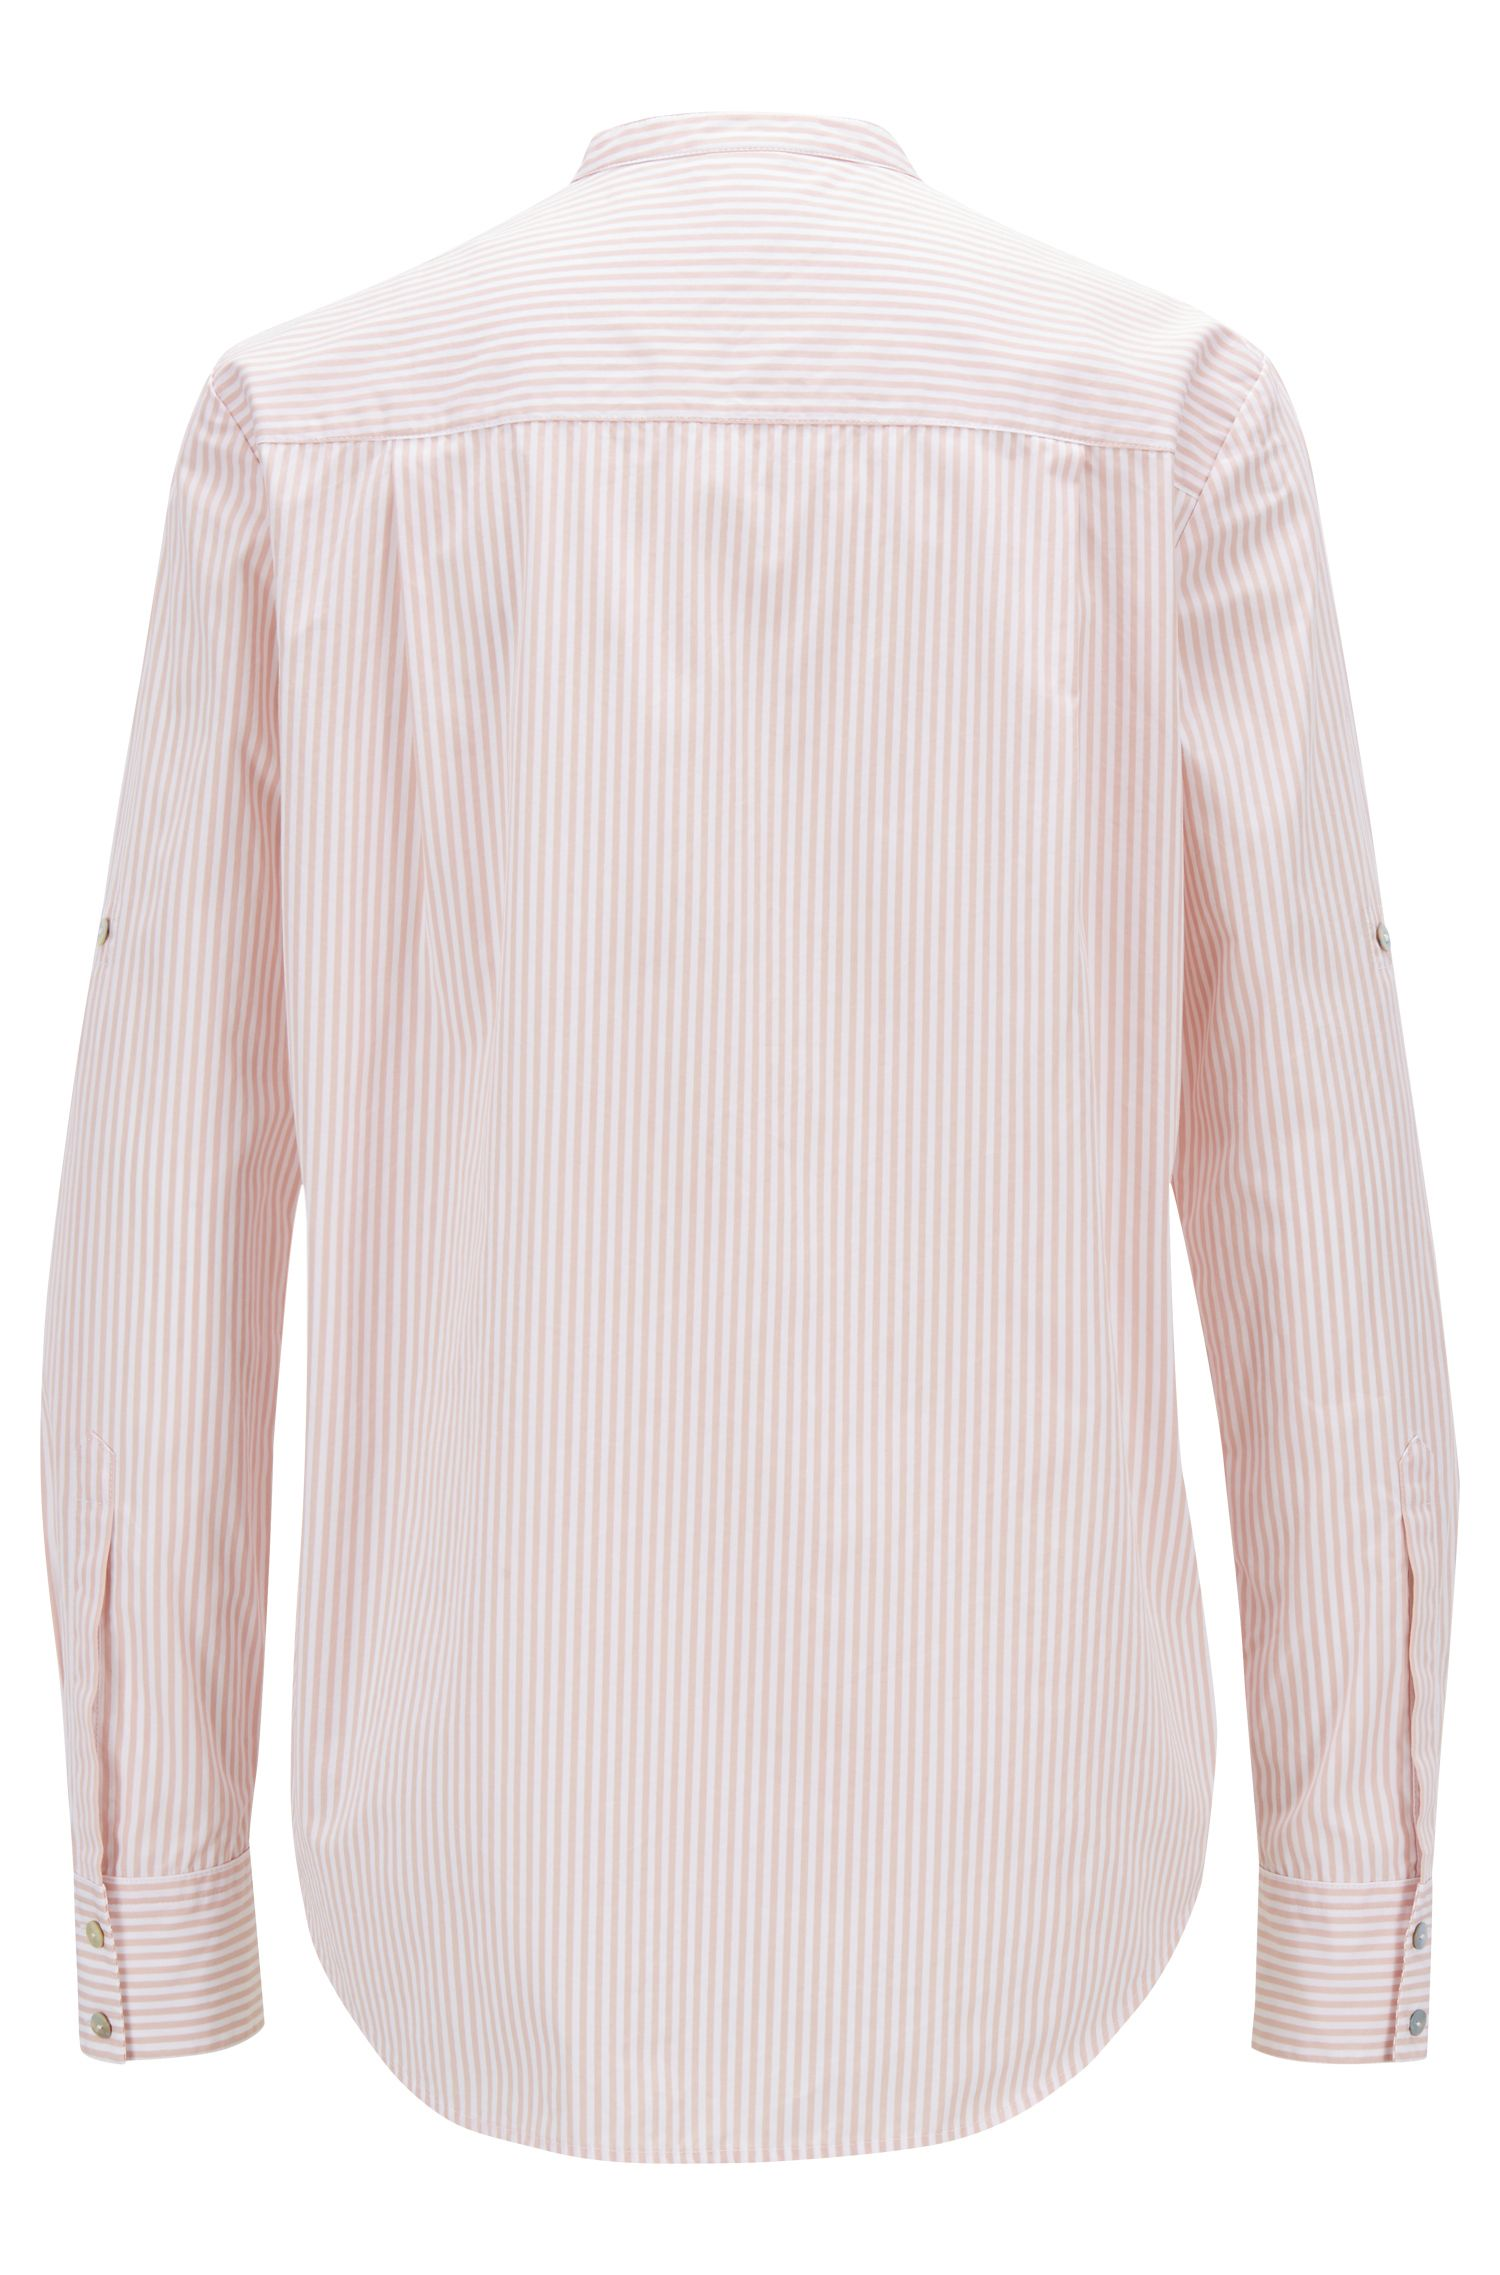 Hugo Boss - Relaxed-fit blouse in striped cotton with stand collar - 3